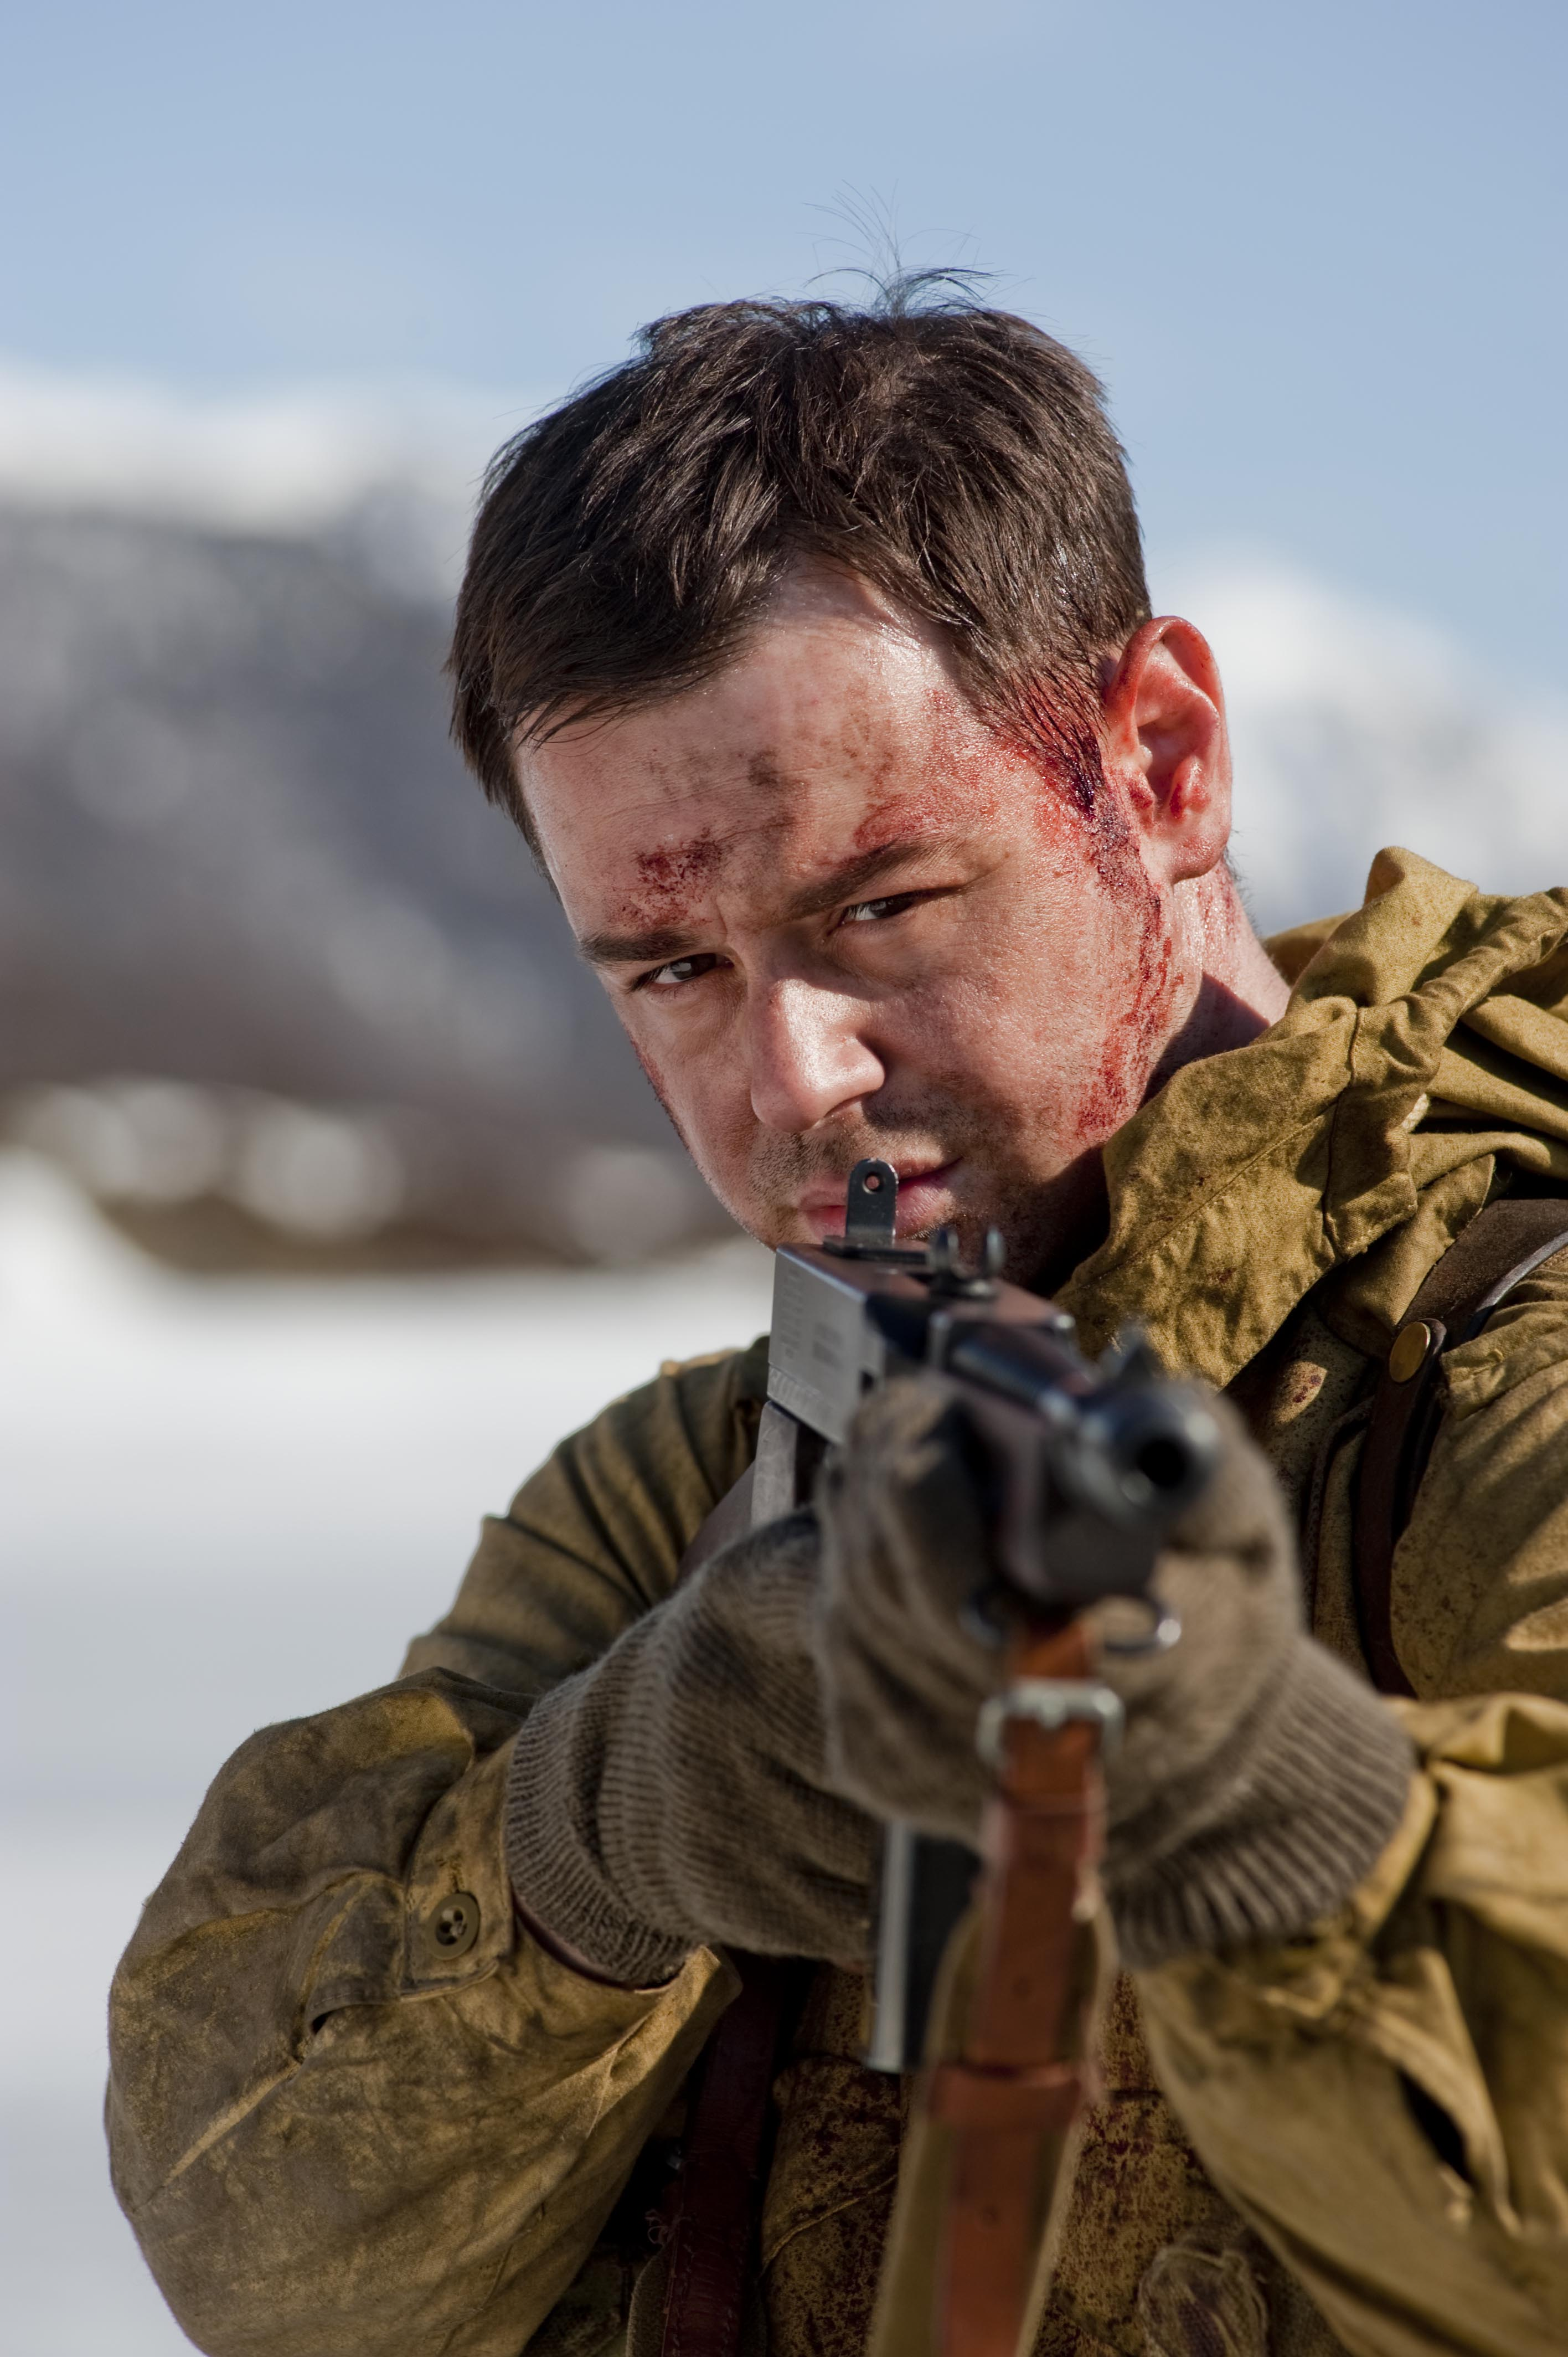 new trailer  u0026 images for age of heroes starring sean bean  u0026 danny dyer